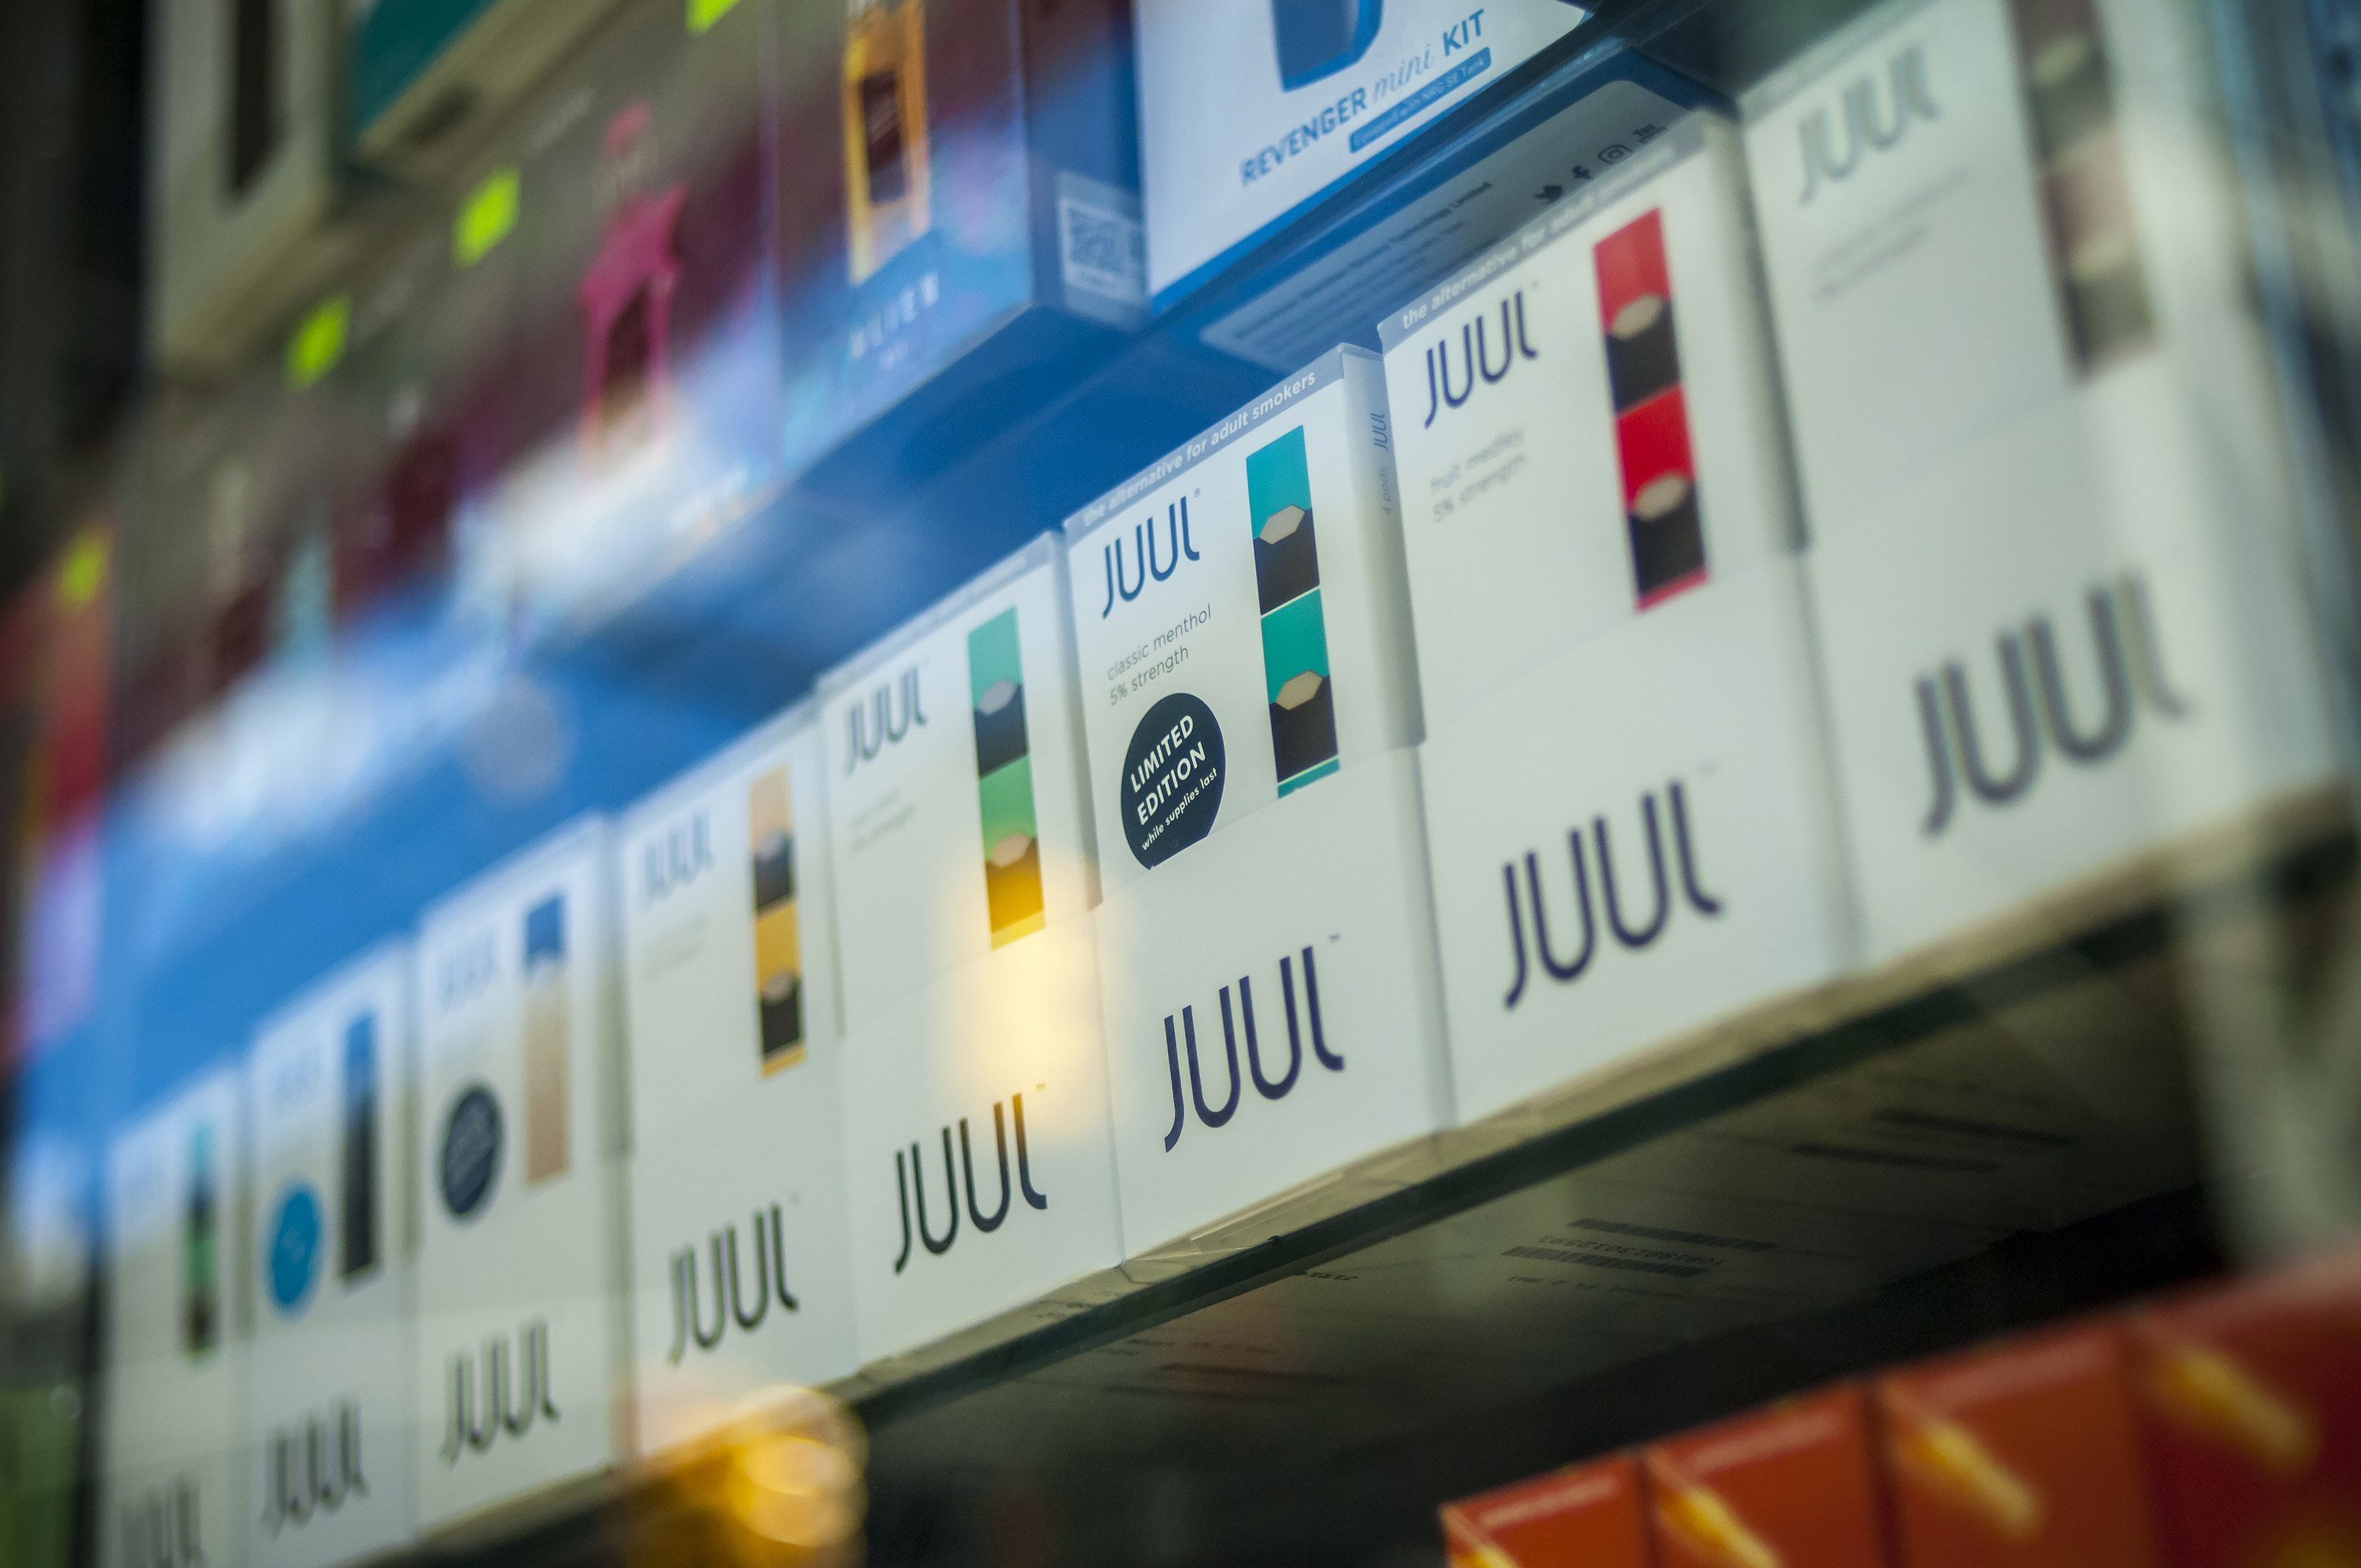 Juul founders aimed for big tech glory and got Big Tobacco